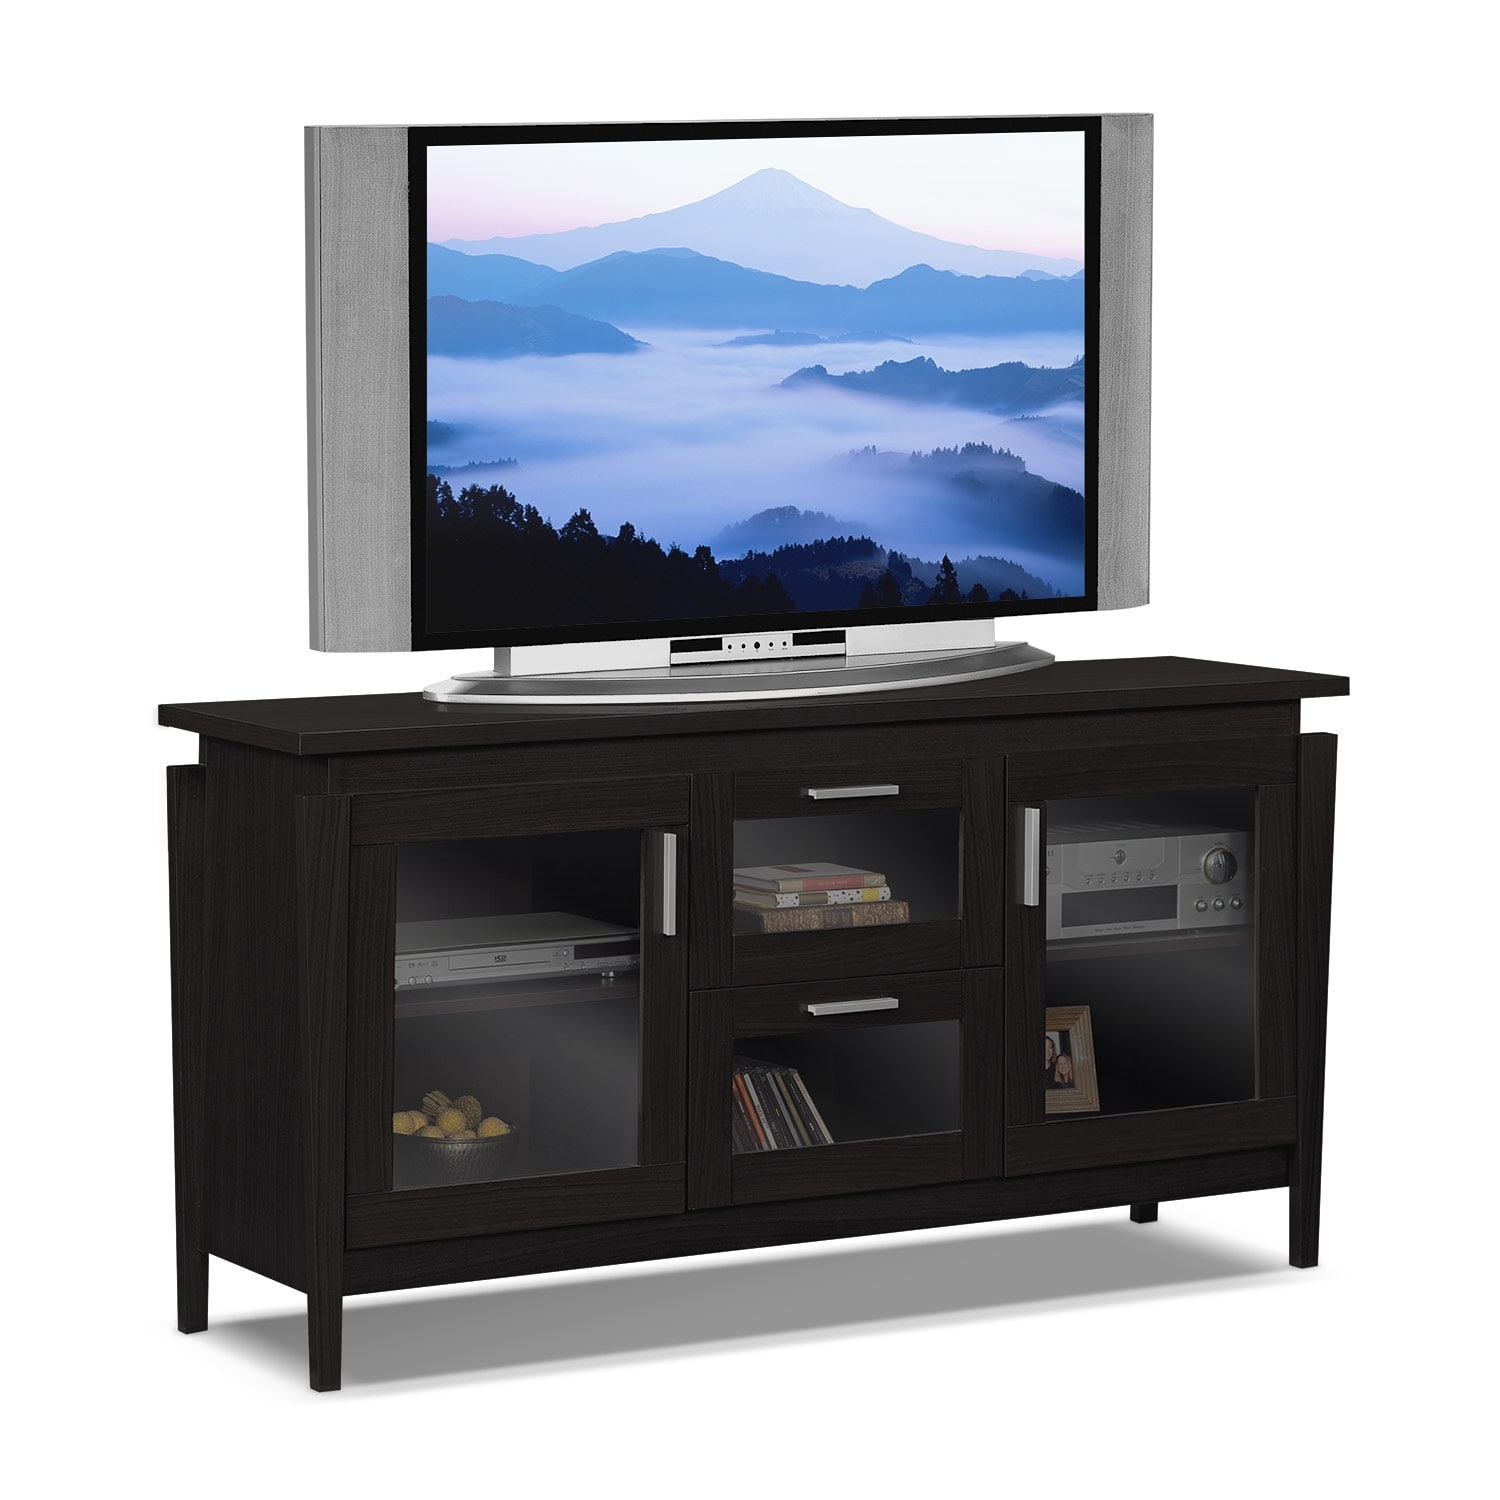 Saber 60 Quot Tv Stand Value City Furniture